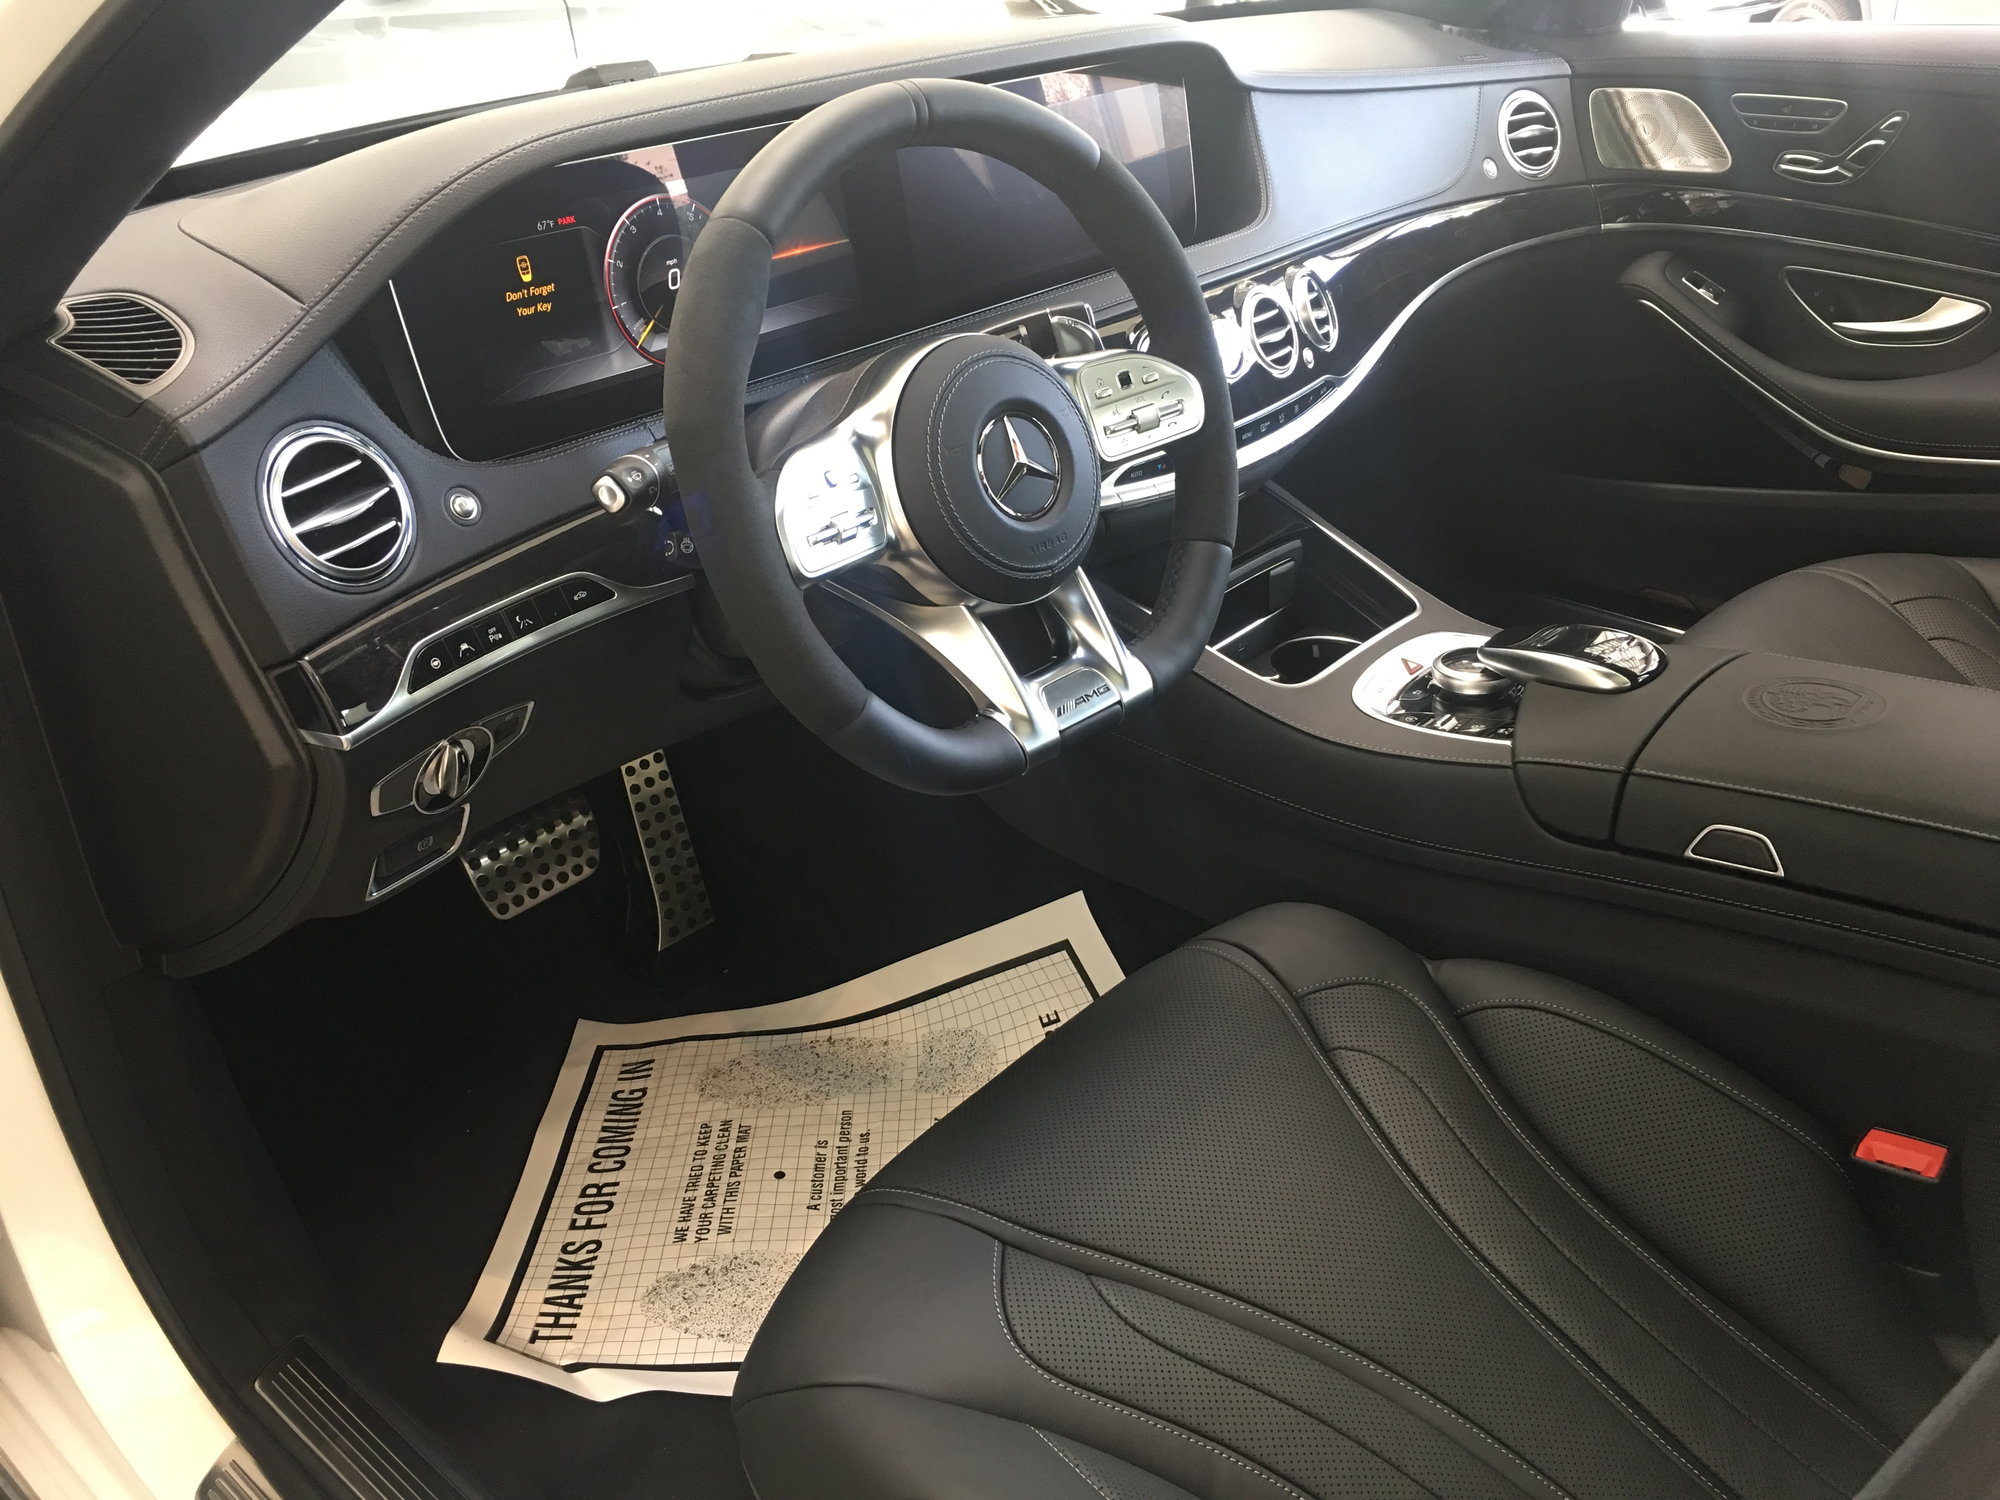 New 2018 S63 for Sale Germantown MD - MBWorld.org Forums